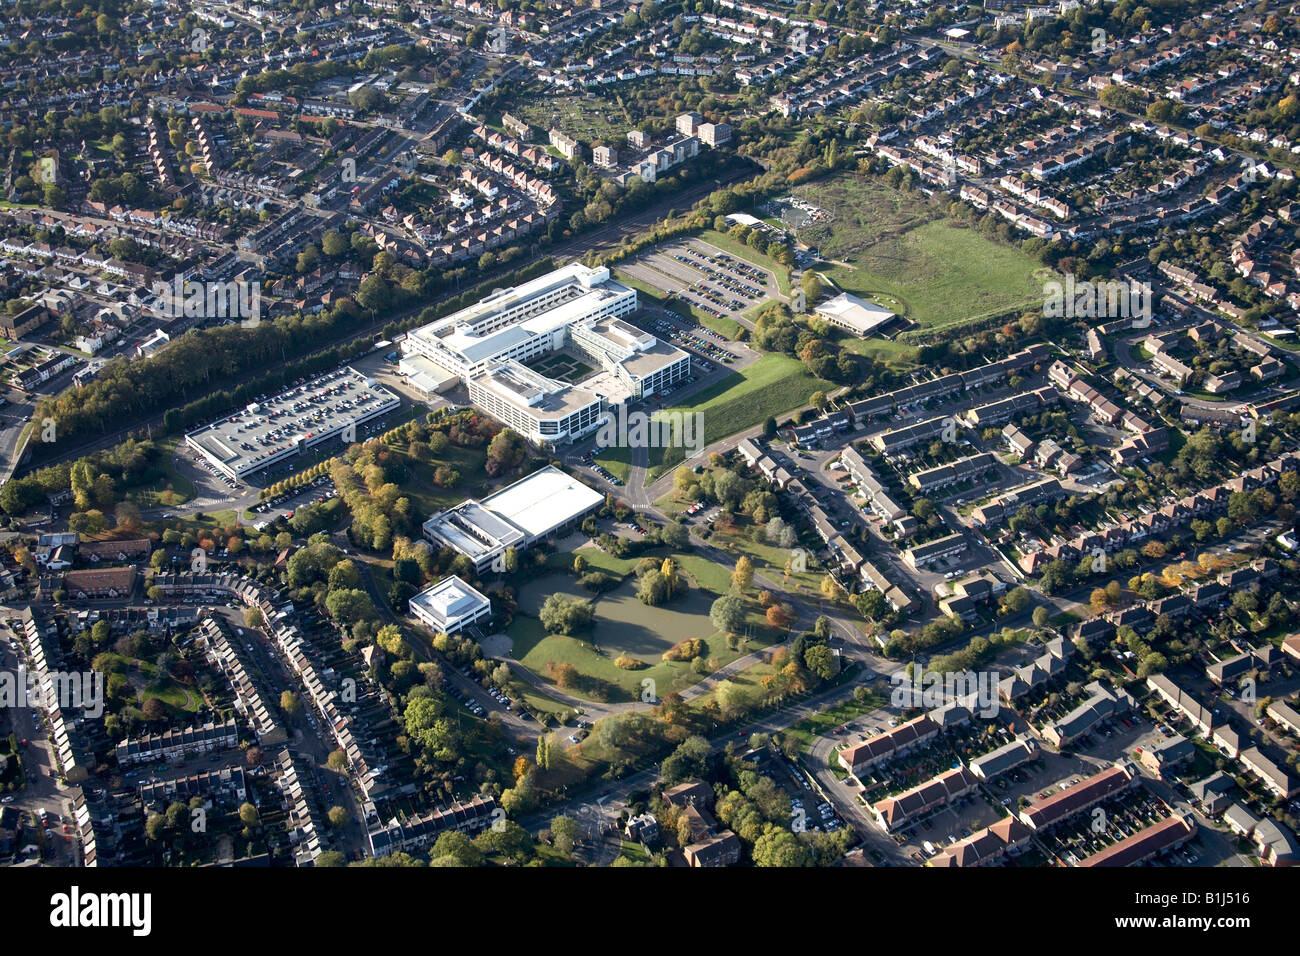 Aerial view west of suburban housing business centre sports ground and railway line Brunswick Park London N11 England - Stock Image